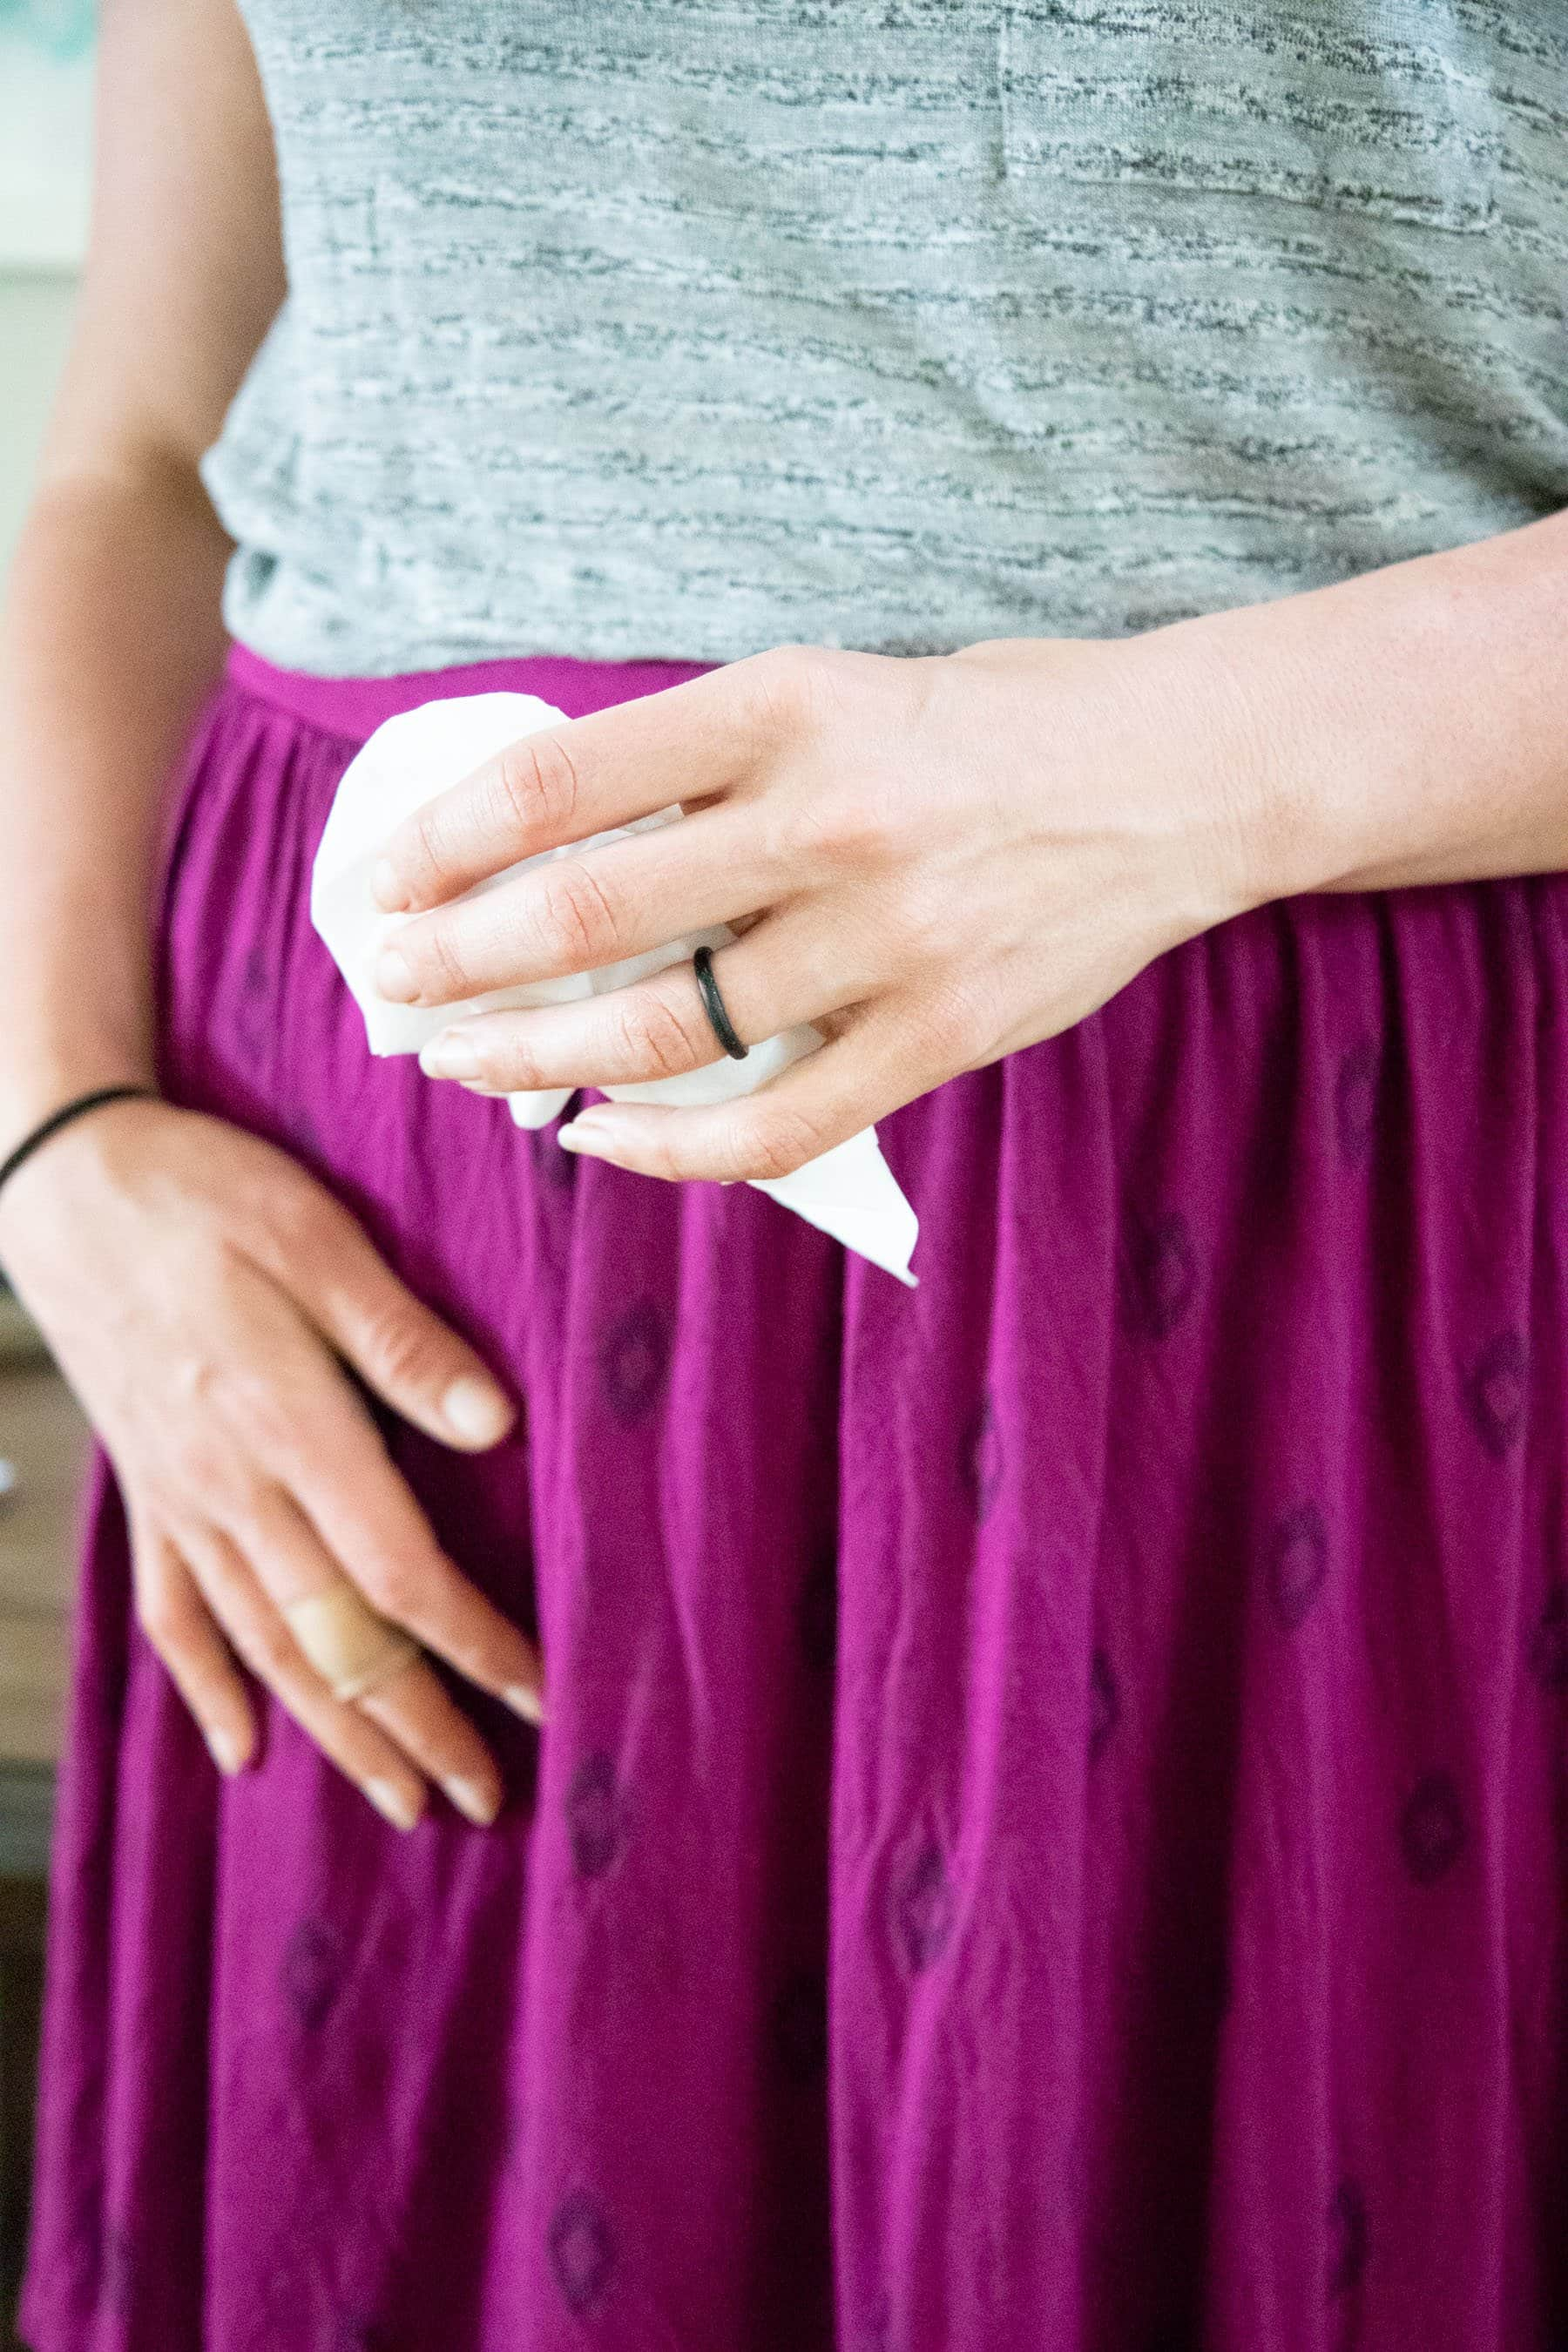 Torso of a woman in a gray shirt and purple skirt holding a tissue, at therapy for the first time